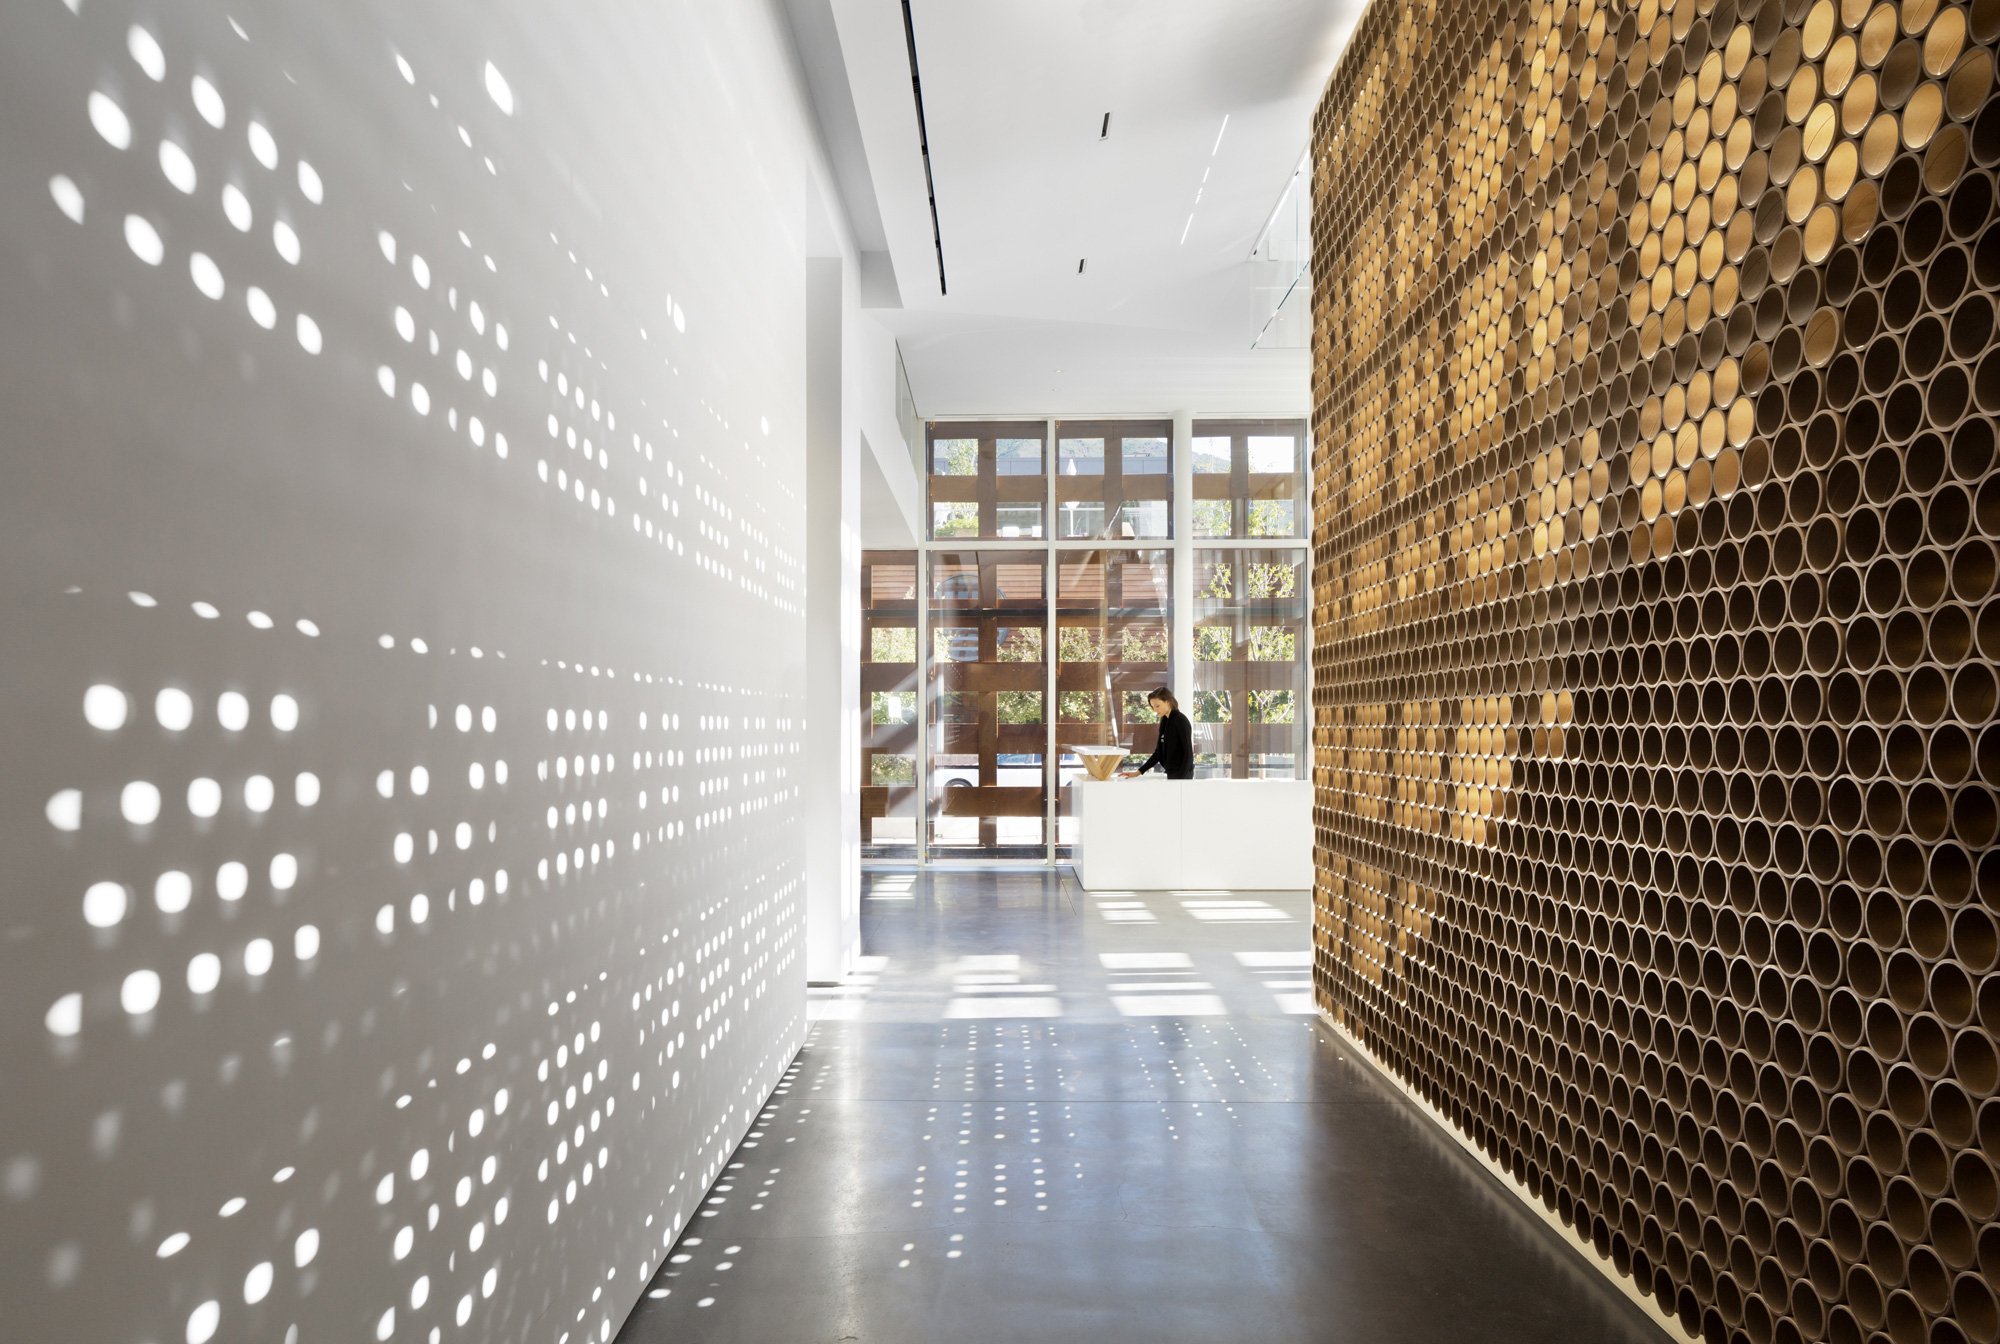 Aspen Art Museum / Shigeru Ban Architects (11)